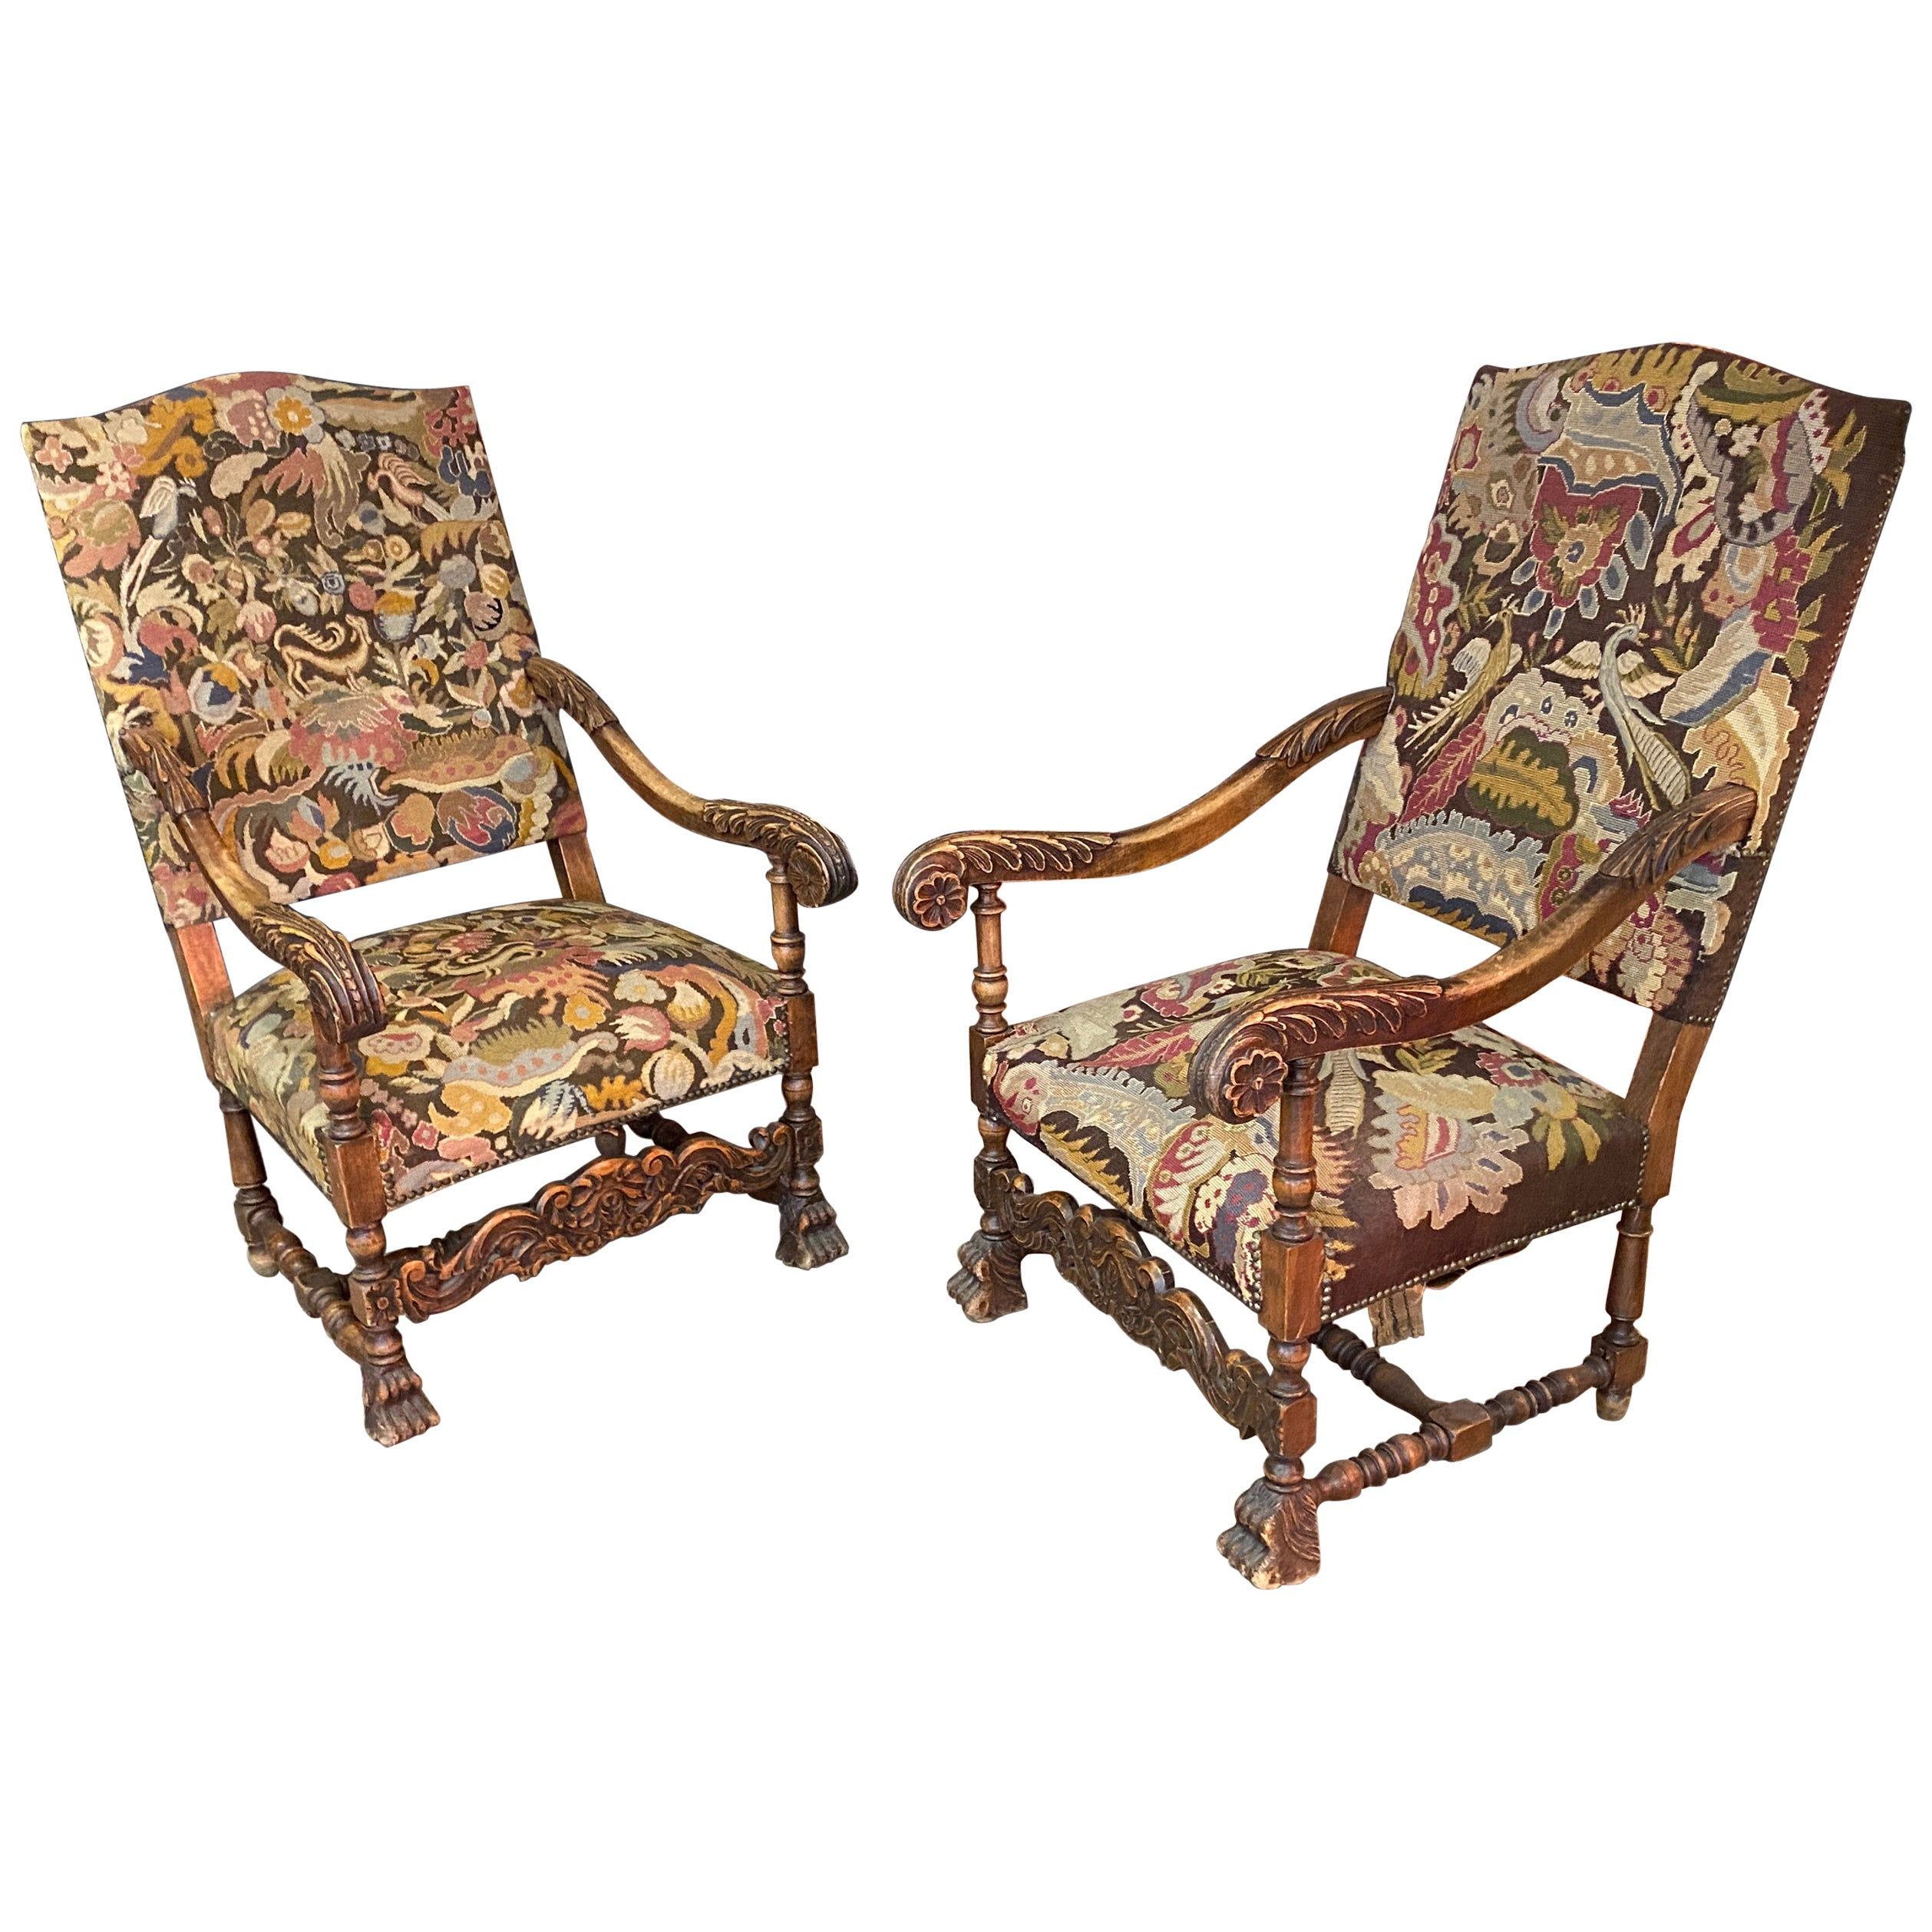 two Louis XIII Style Armchairs, circa 1900